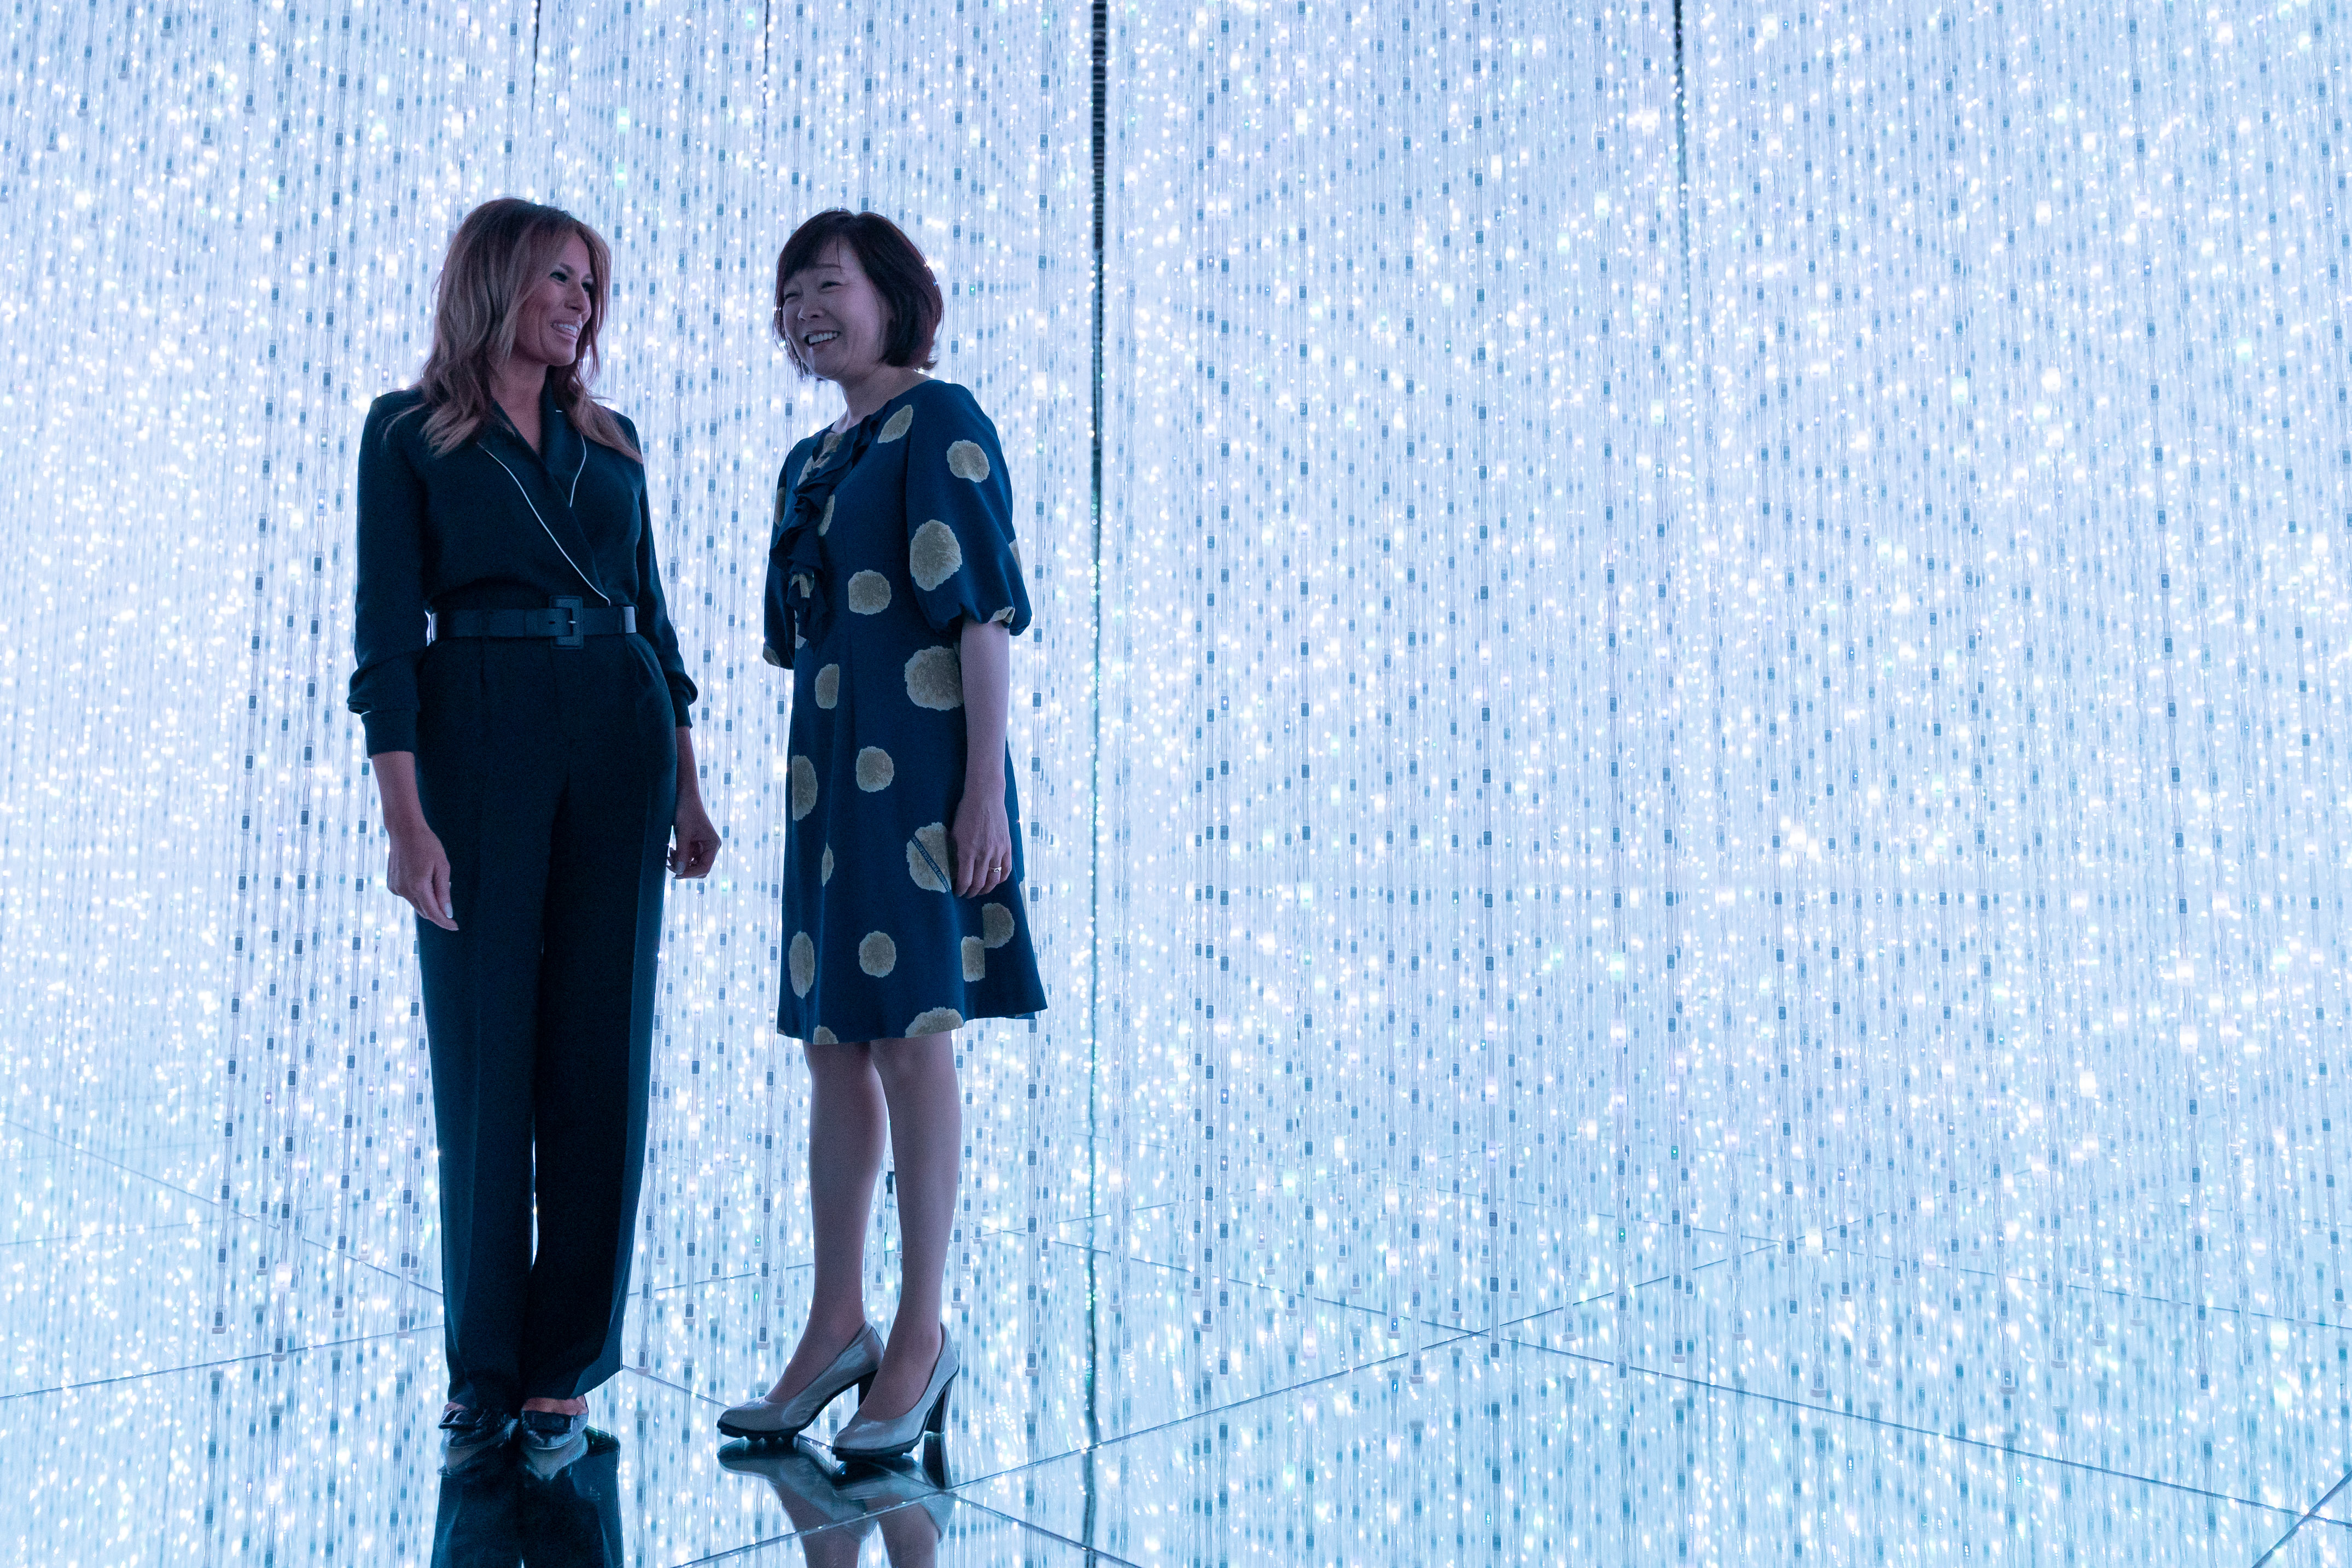 TOKYO, JAPAN - MAY 26: Japan's Prime Minister Shinzo Abe's wife Akie Abe (R) and U.S. first Lady Melania Trump (L) visit the MORI Building DIGITAL ART MUSEUM on May 26, 2019 in Tokyo, Japan. (Photo by Pierre Emmanuel Deletree - Pool/Getty Images)